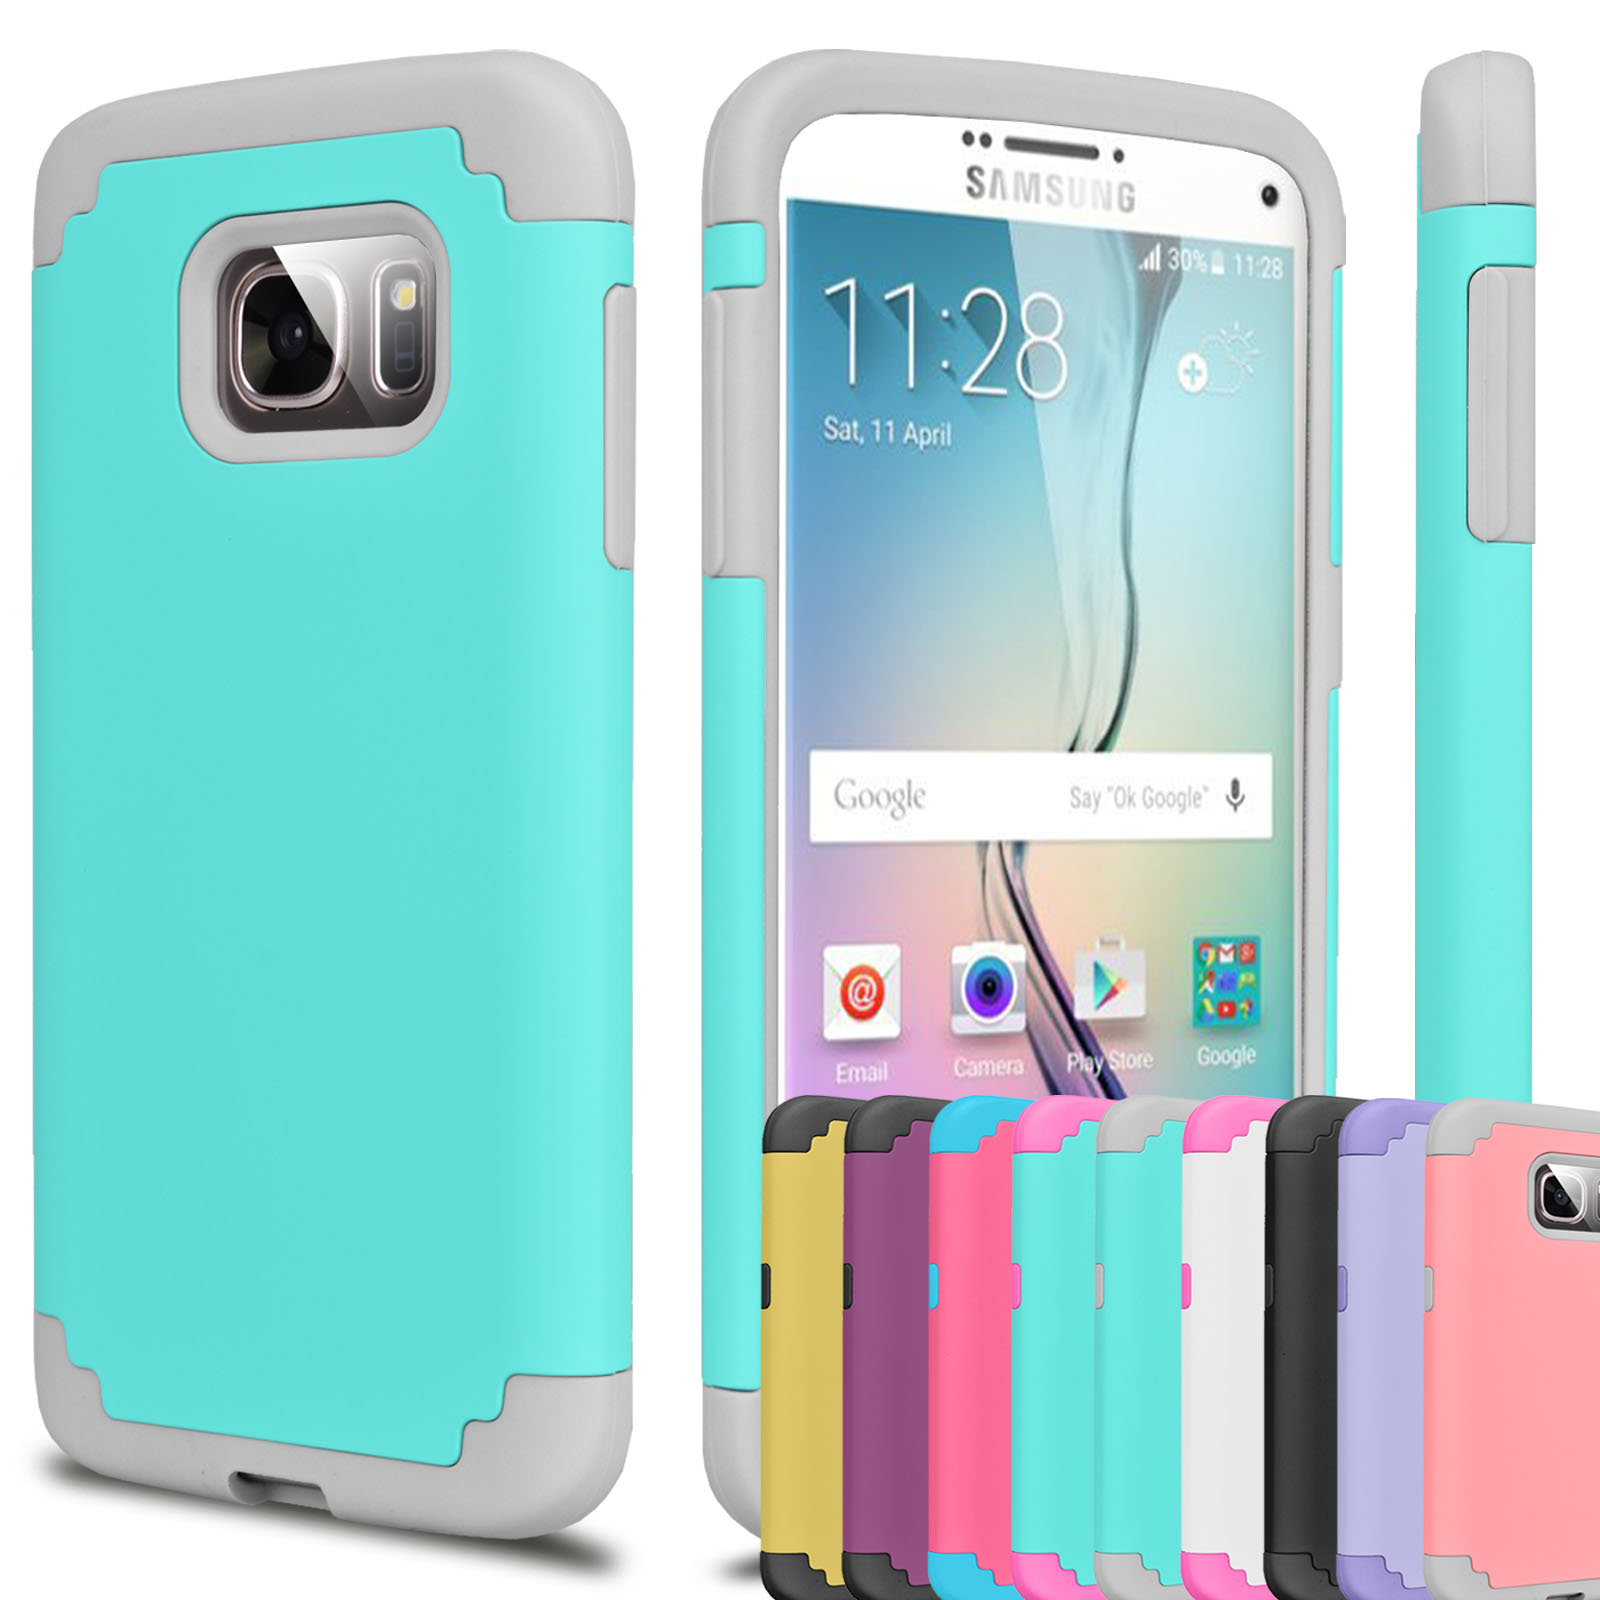 Galaxy S7 Edge Case, S7 Edge Case, Njjex Hybrid Rugged Rubber Shock Absorbing Plastic Impact Defender Hard Case Cover For Samsung Galaxy S7 Edge G935